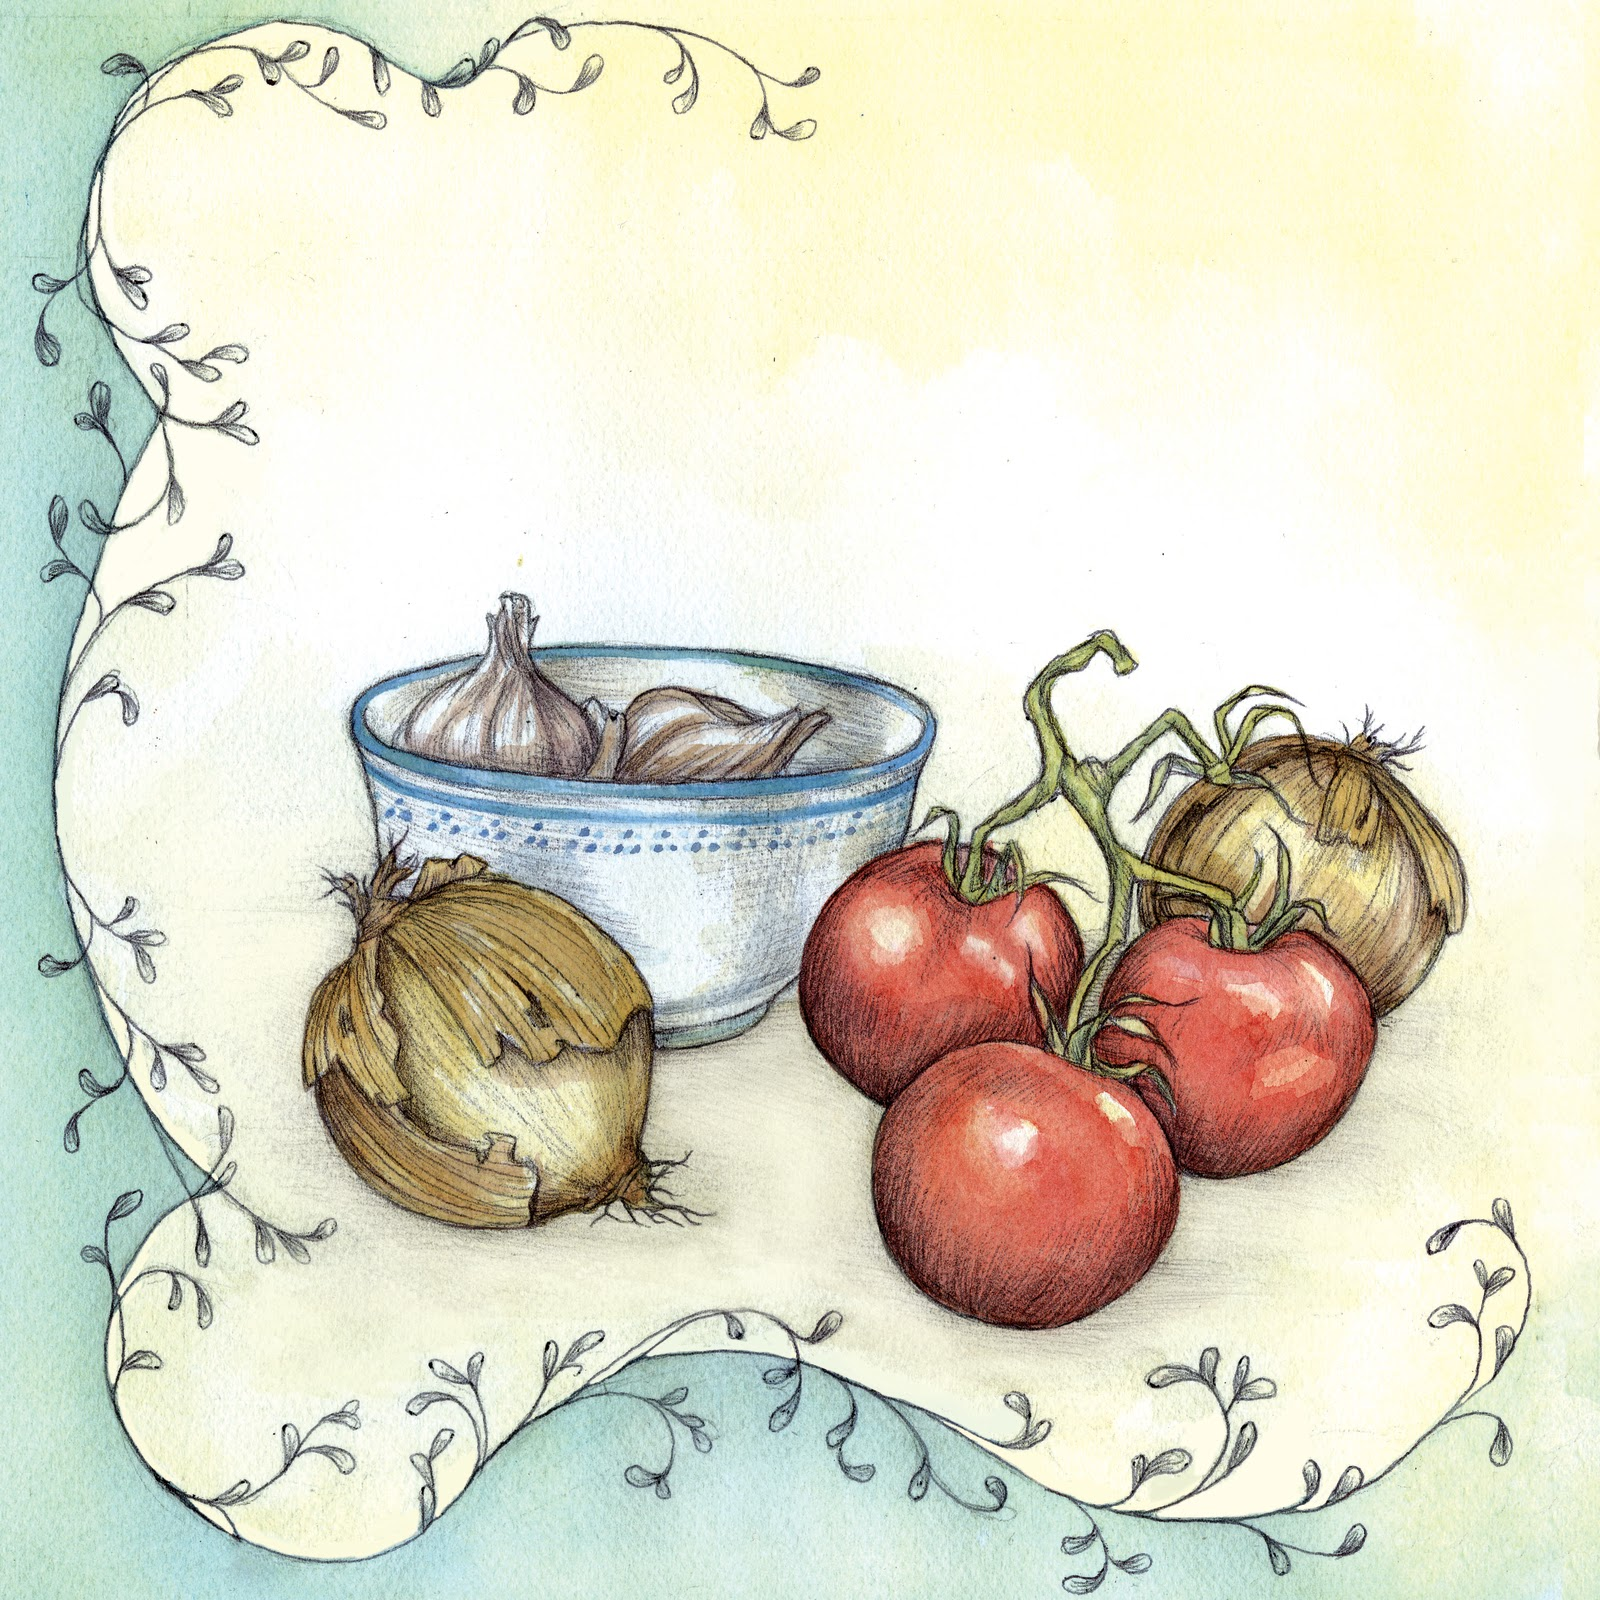 Catherine Fontenot: Illustrations & Such: For a cookbook ...